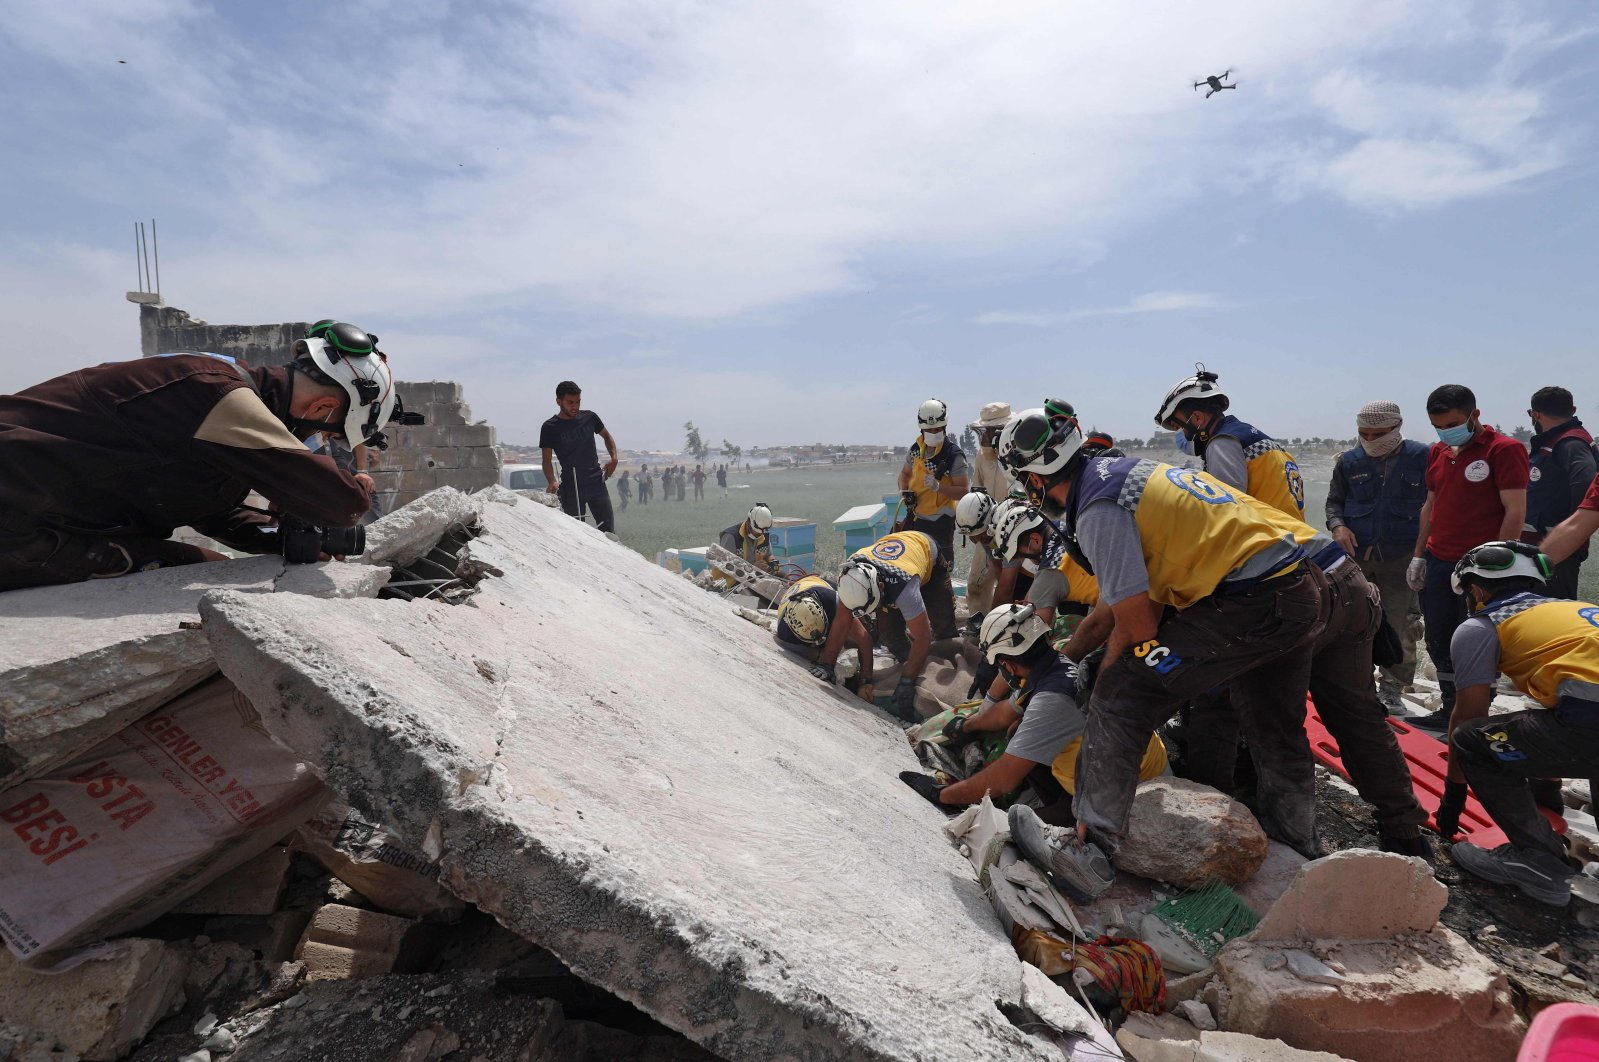 Members of Syria's Civil Defence service (White Helmets) look for wounded people in the rubble after a reported explosion in a depot close to a camp for the internally displaced near al-Fua, in the country's northwestern Idlib province, May 3, 2021. (AFP Photo)